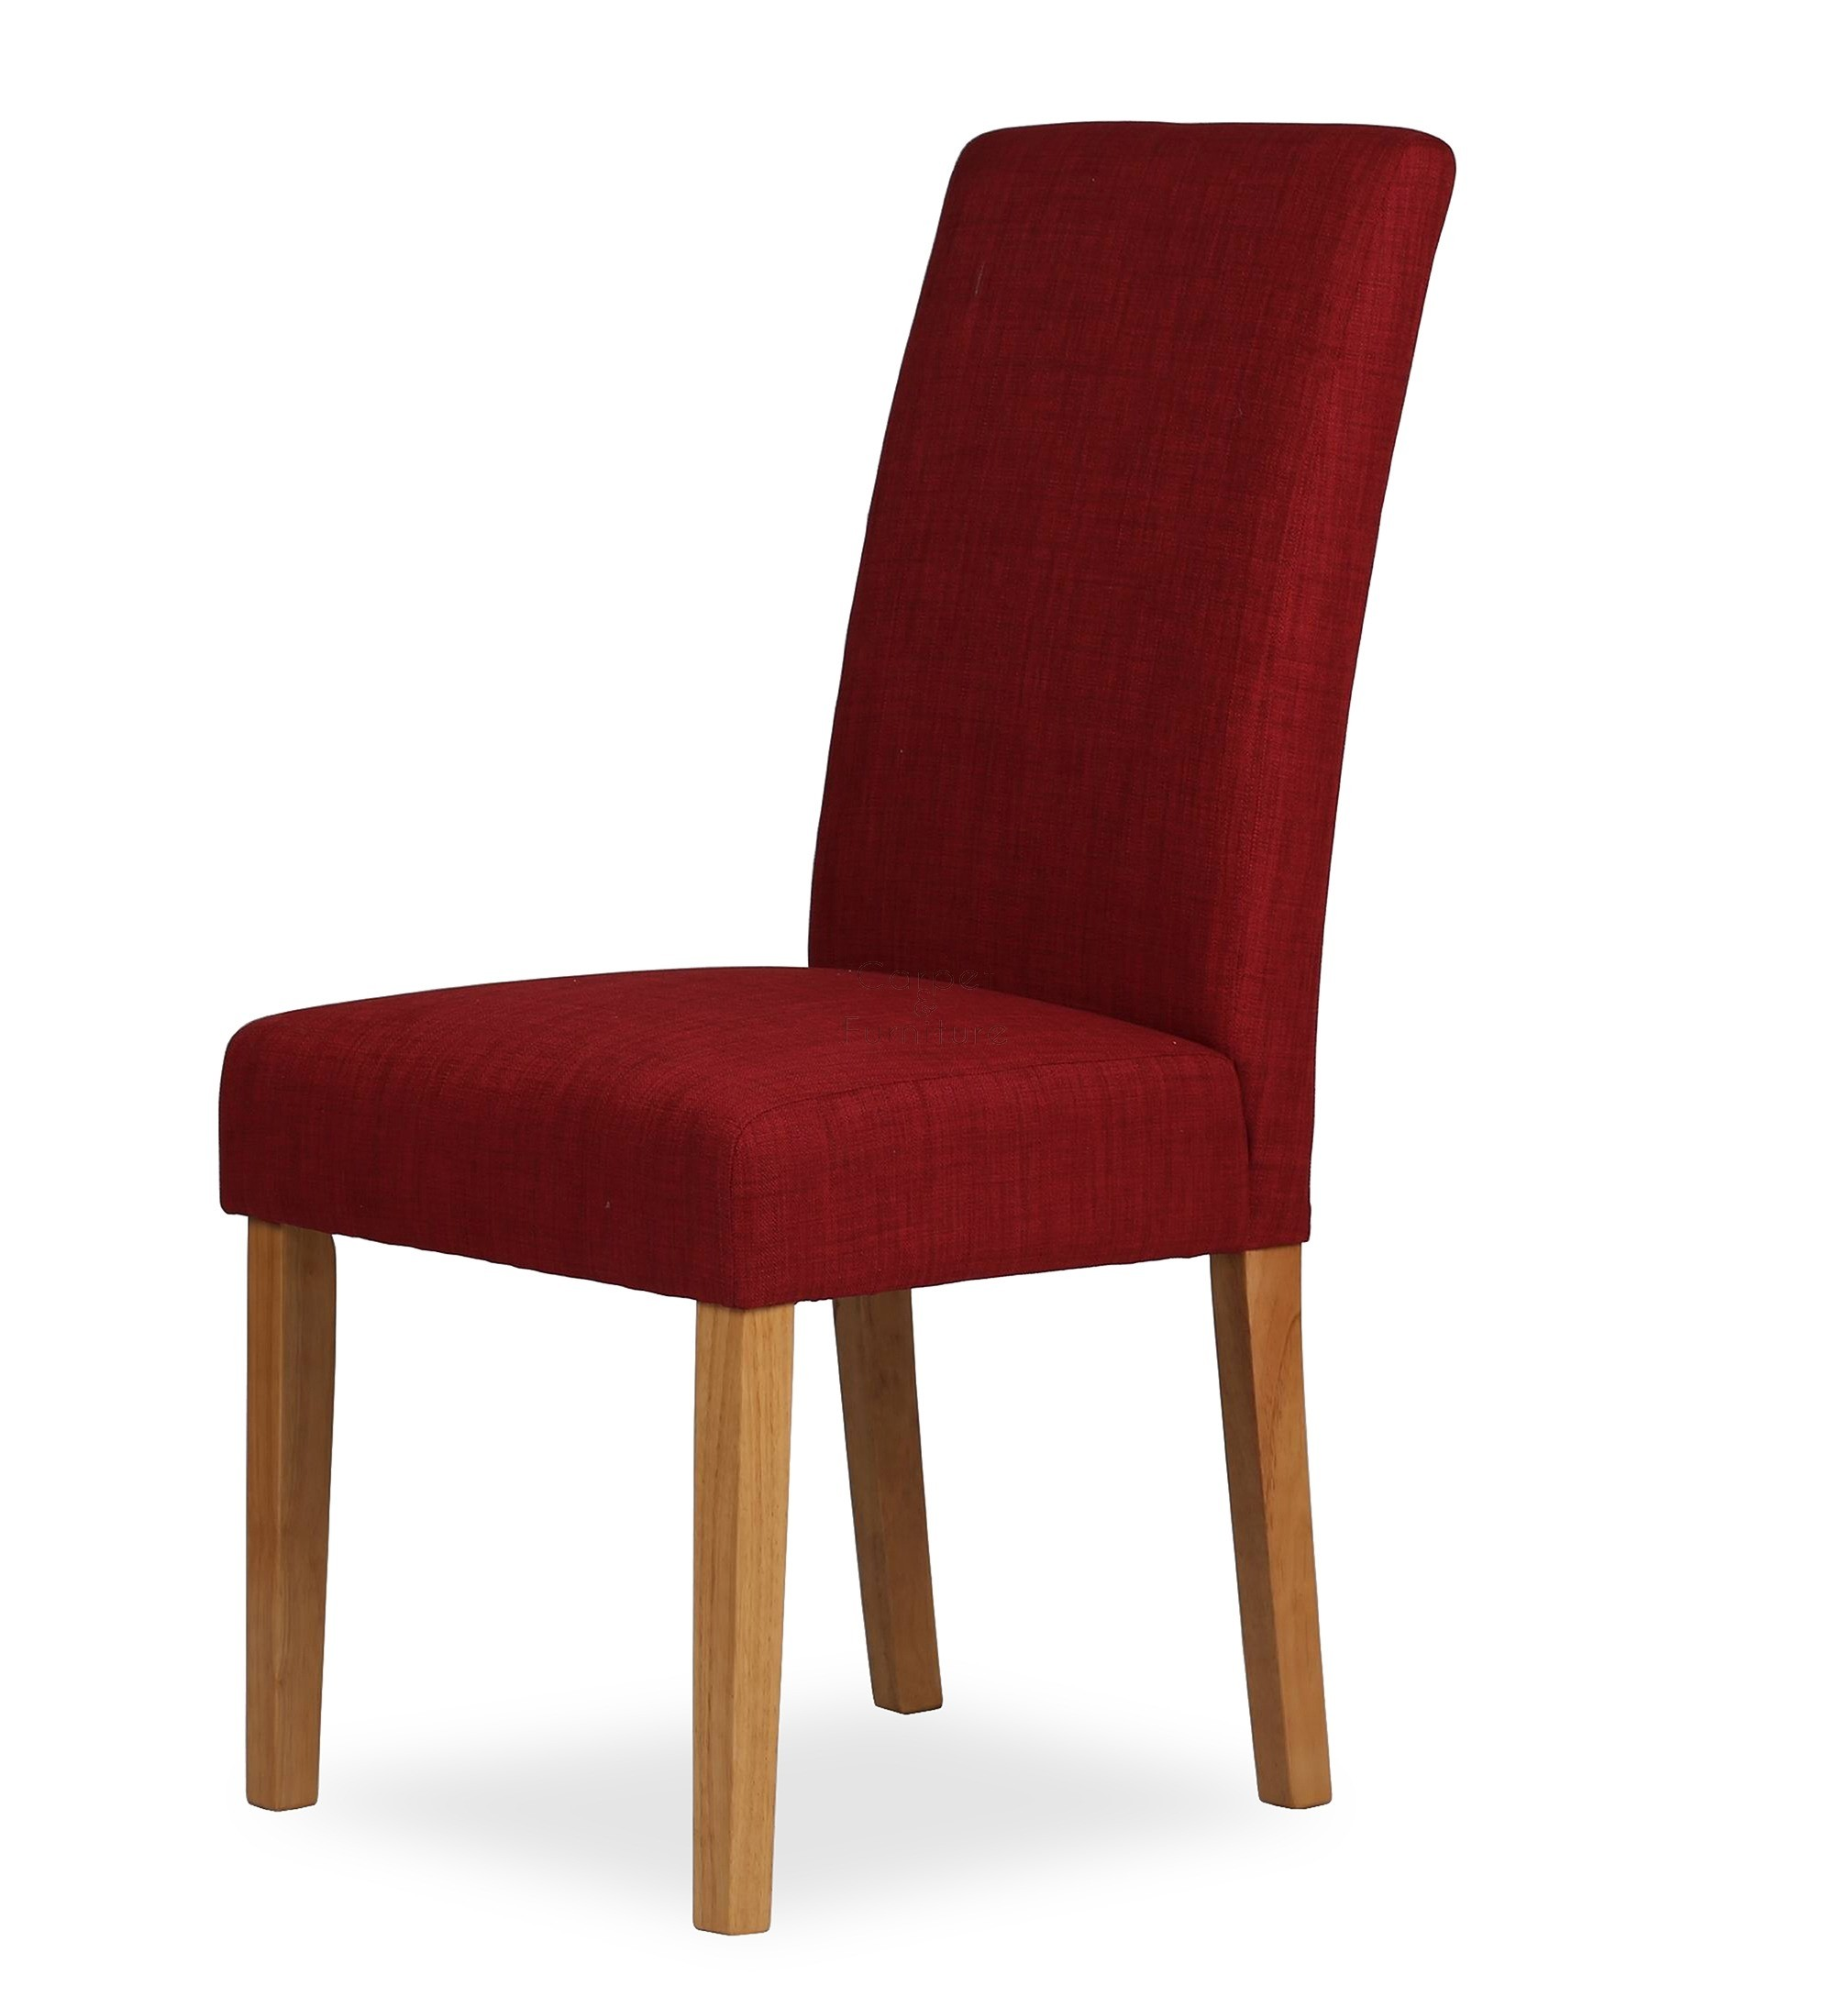 red tufted dining chair bassett ellis executive upholstered claret